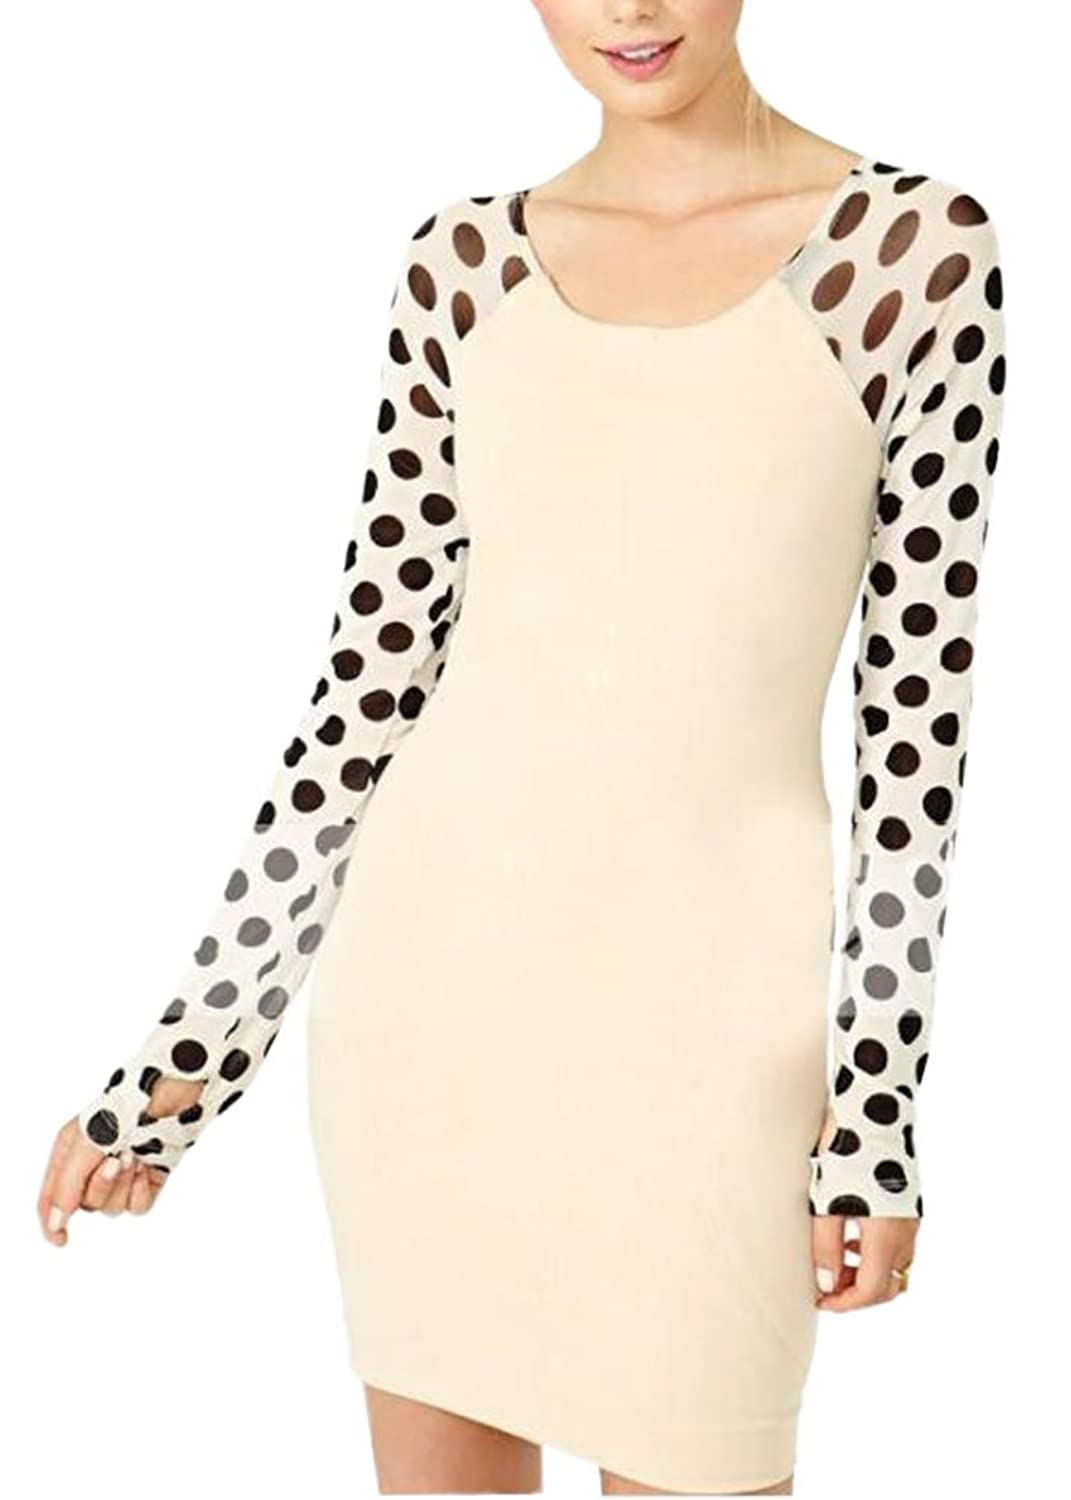 OUCHI Women Polka Dotted Long Sleeve Slim Fit Dress Crew Neck Bottoming Dress